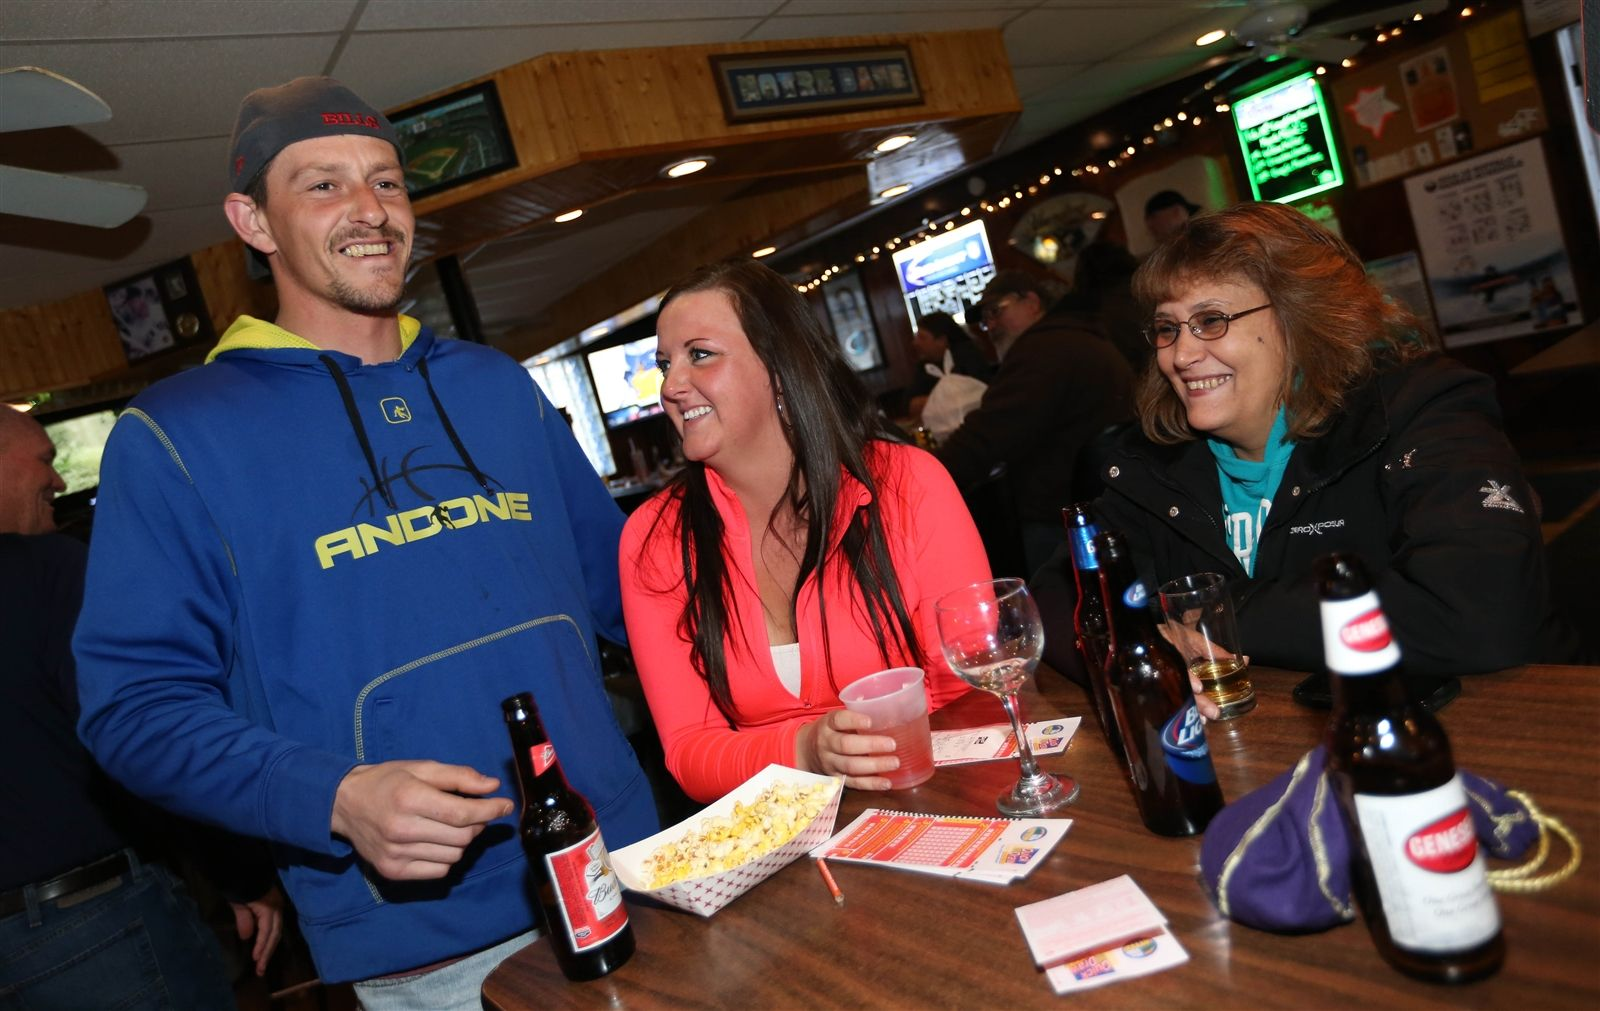 Hanging out from left are Jim Haskins of Silver Creek, Brittany De Loe of Silver Creek and Aesha Sullivan of Blasdell,  Thursday, March 26, 2015.